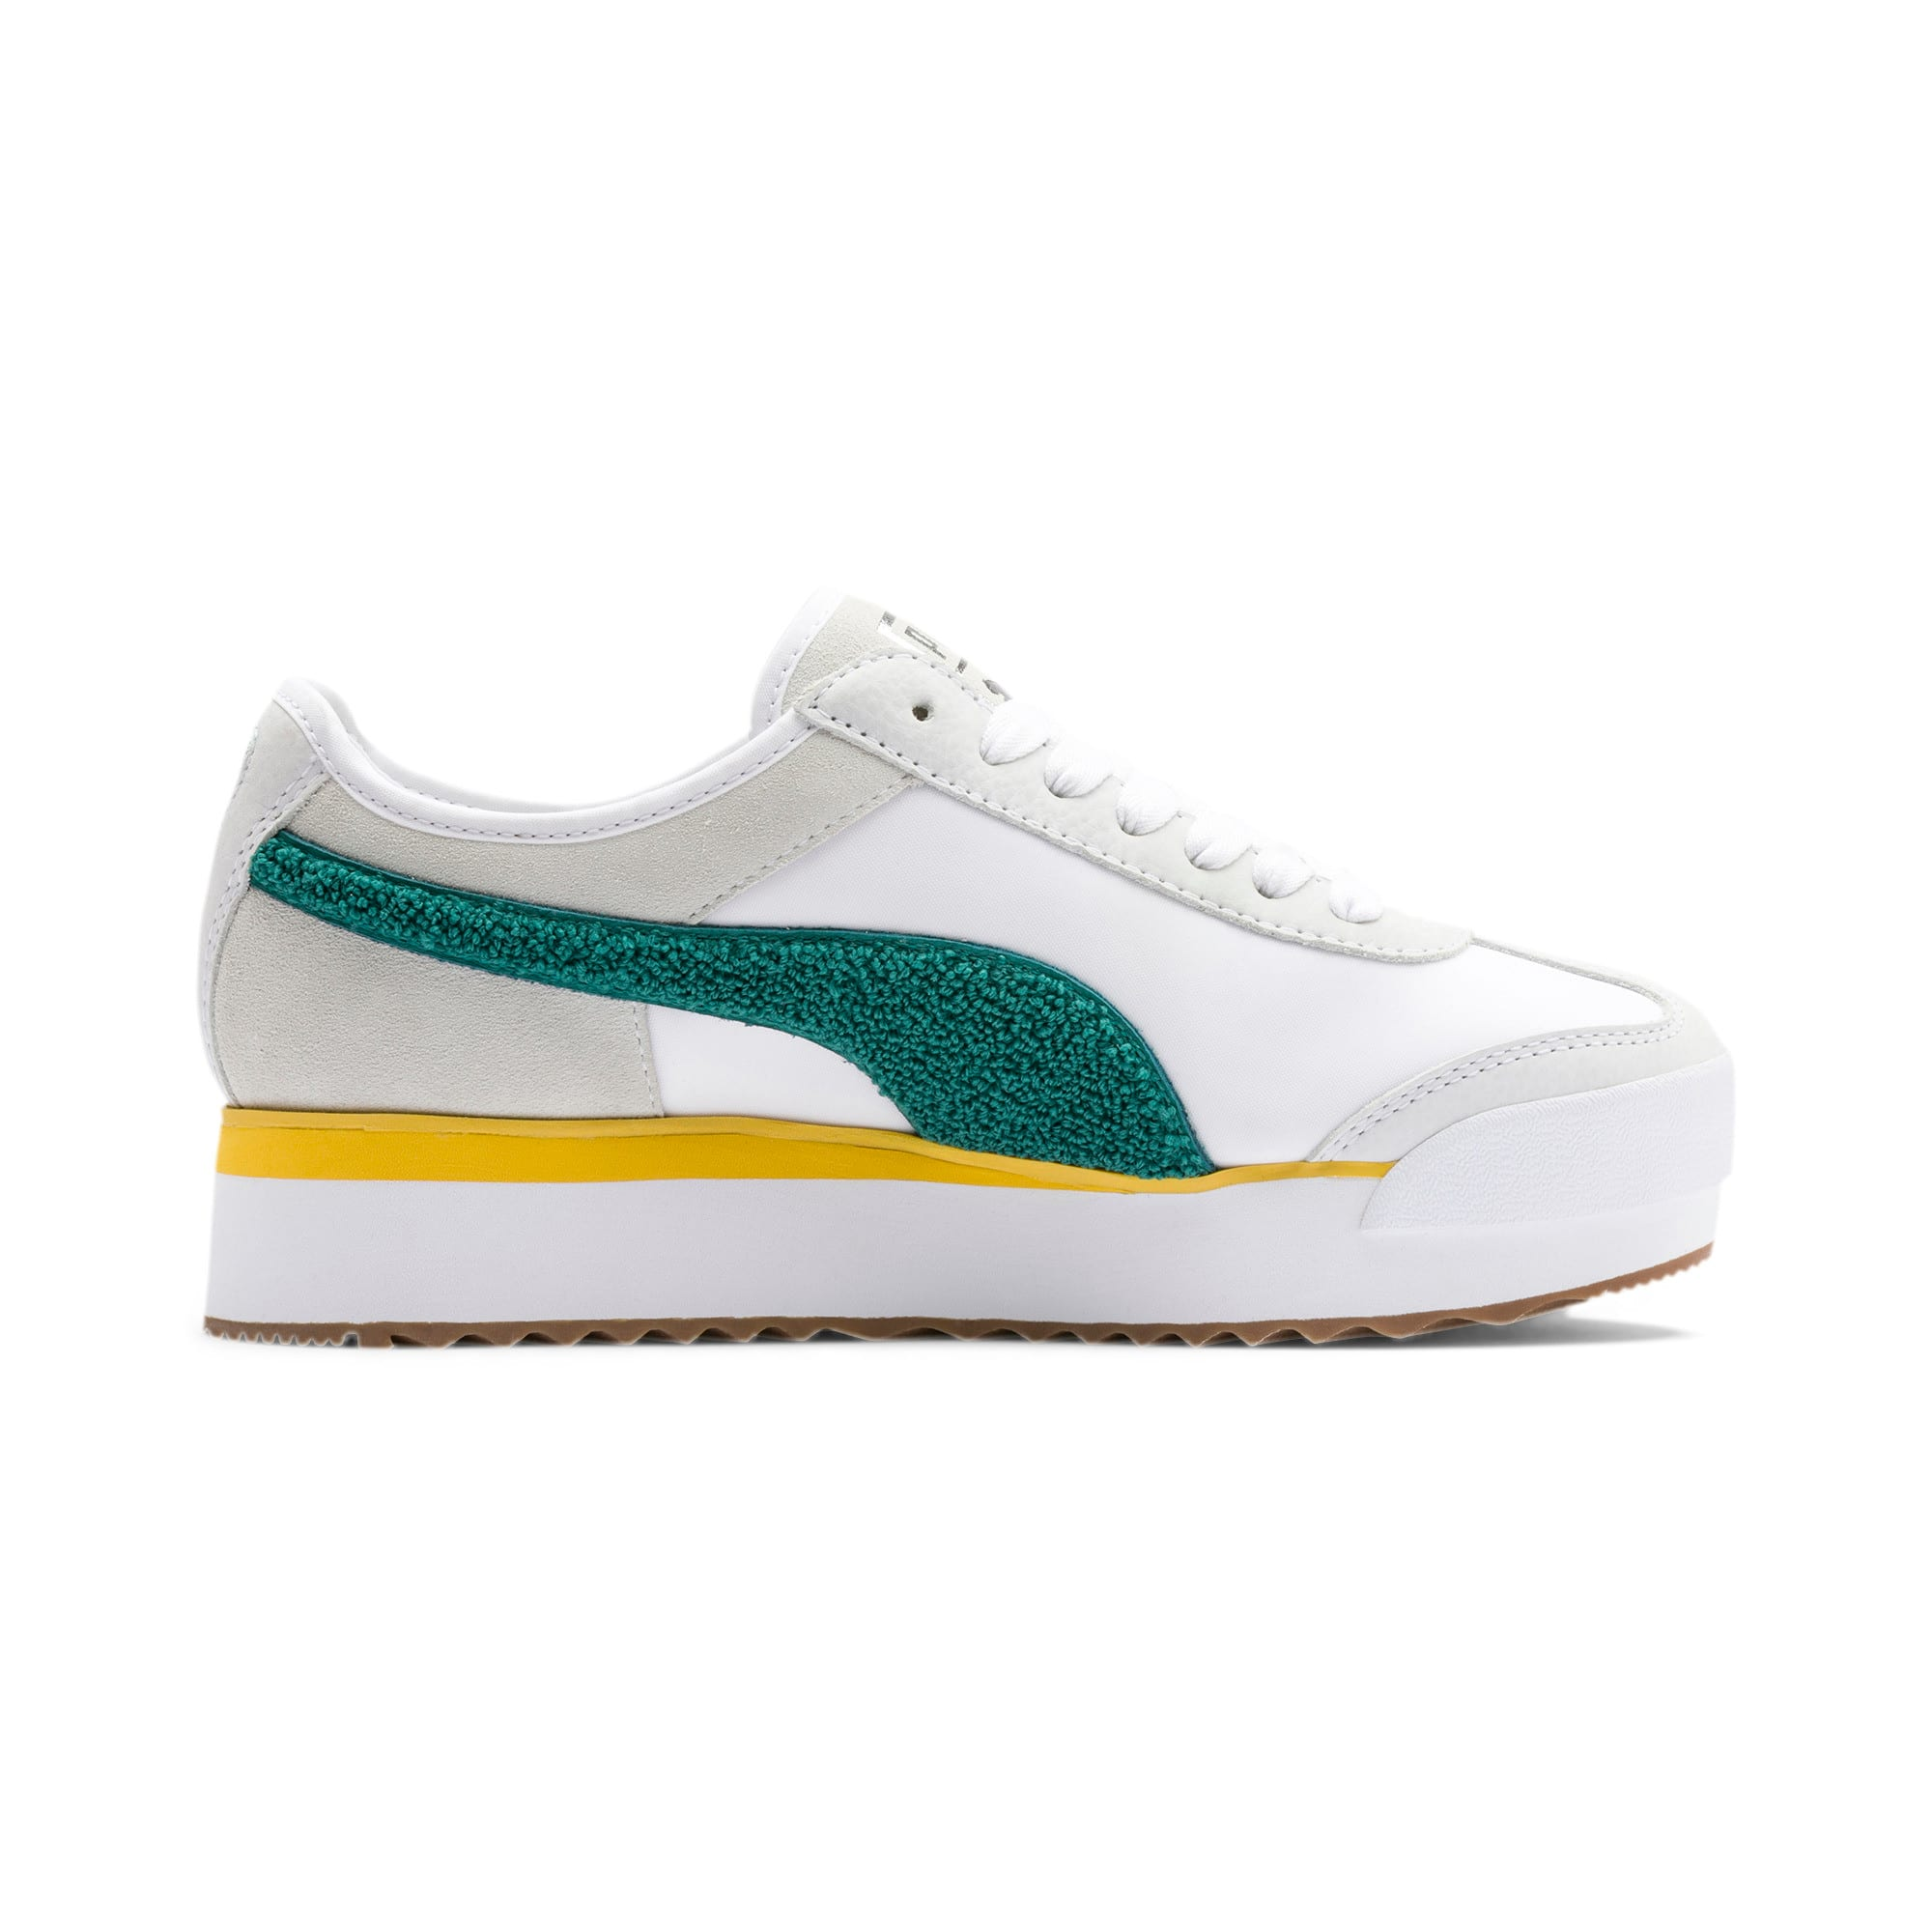 Thumbnail 7 of Roma Amor Heritage Women's Sneakers, Puma White-Teal Green, medium